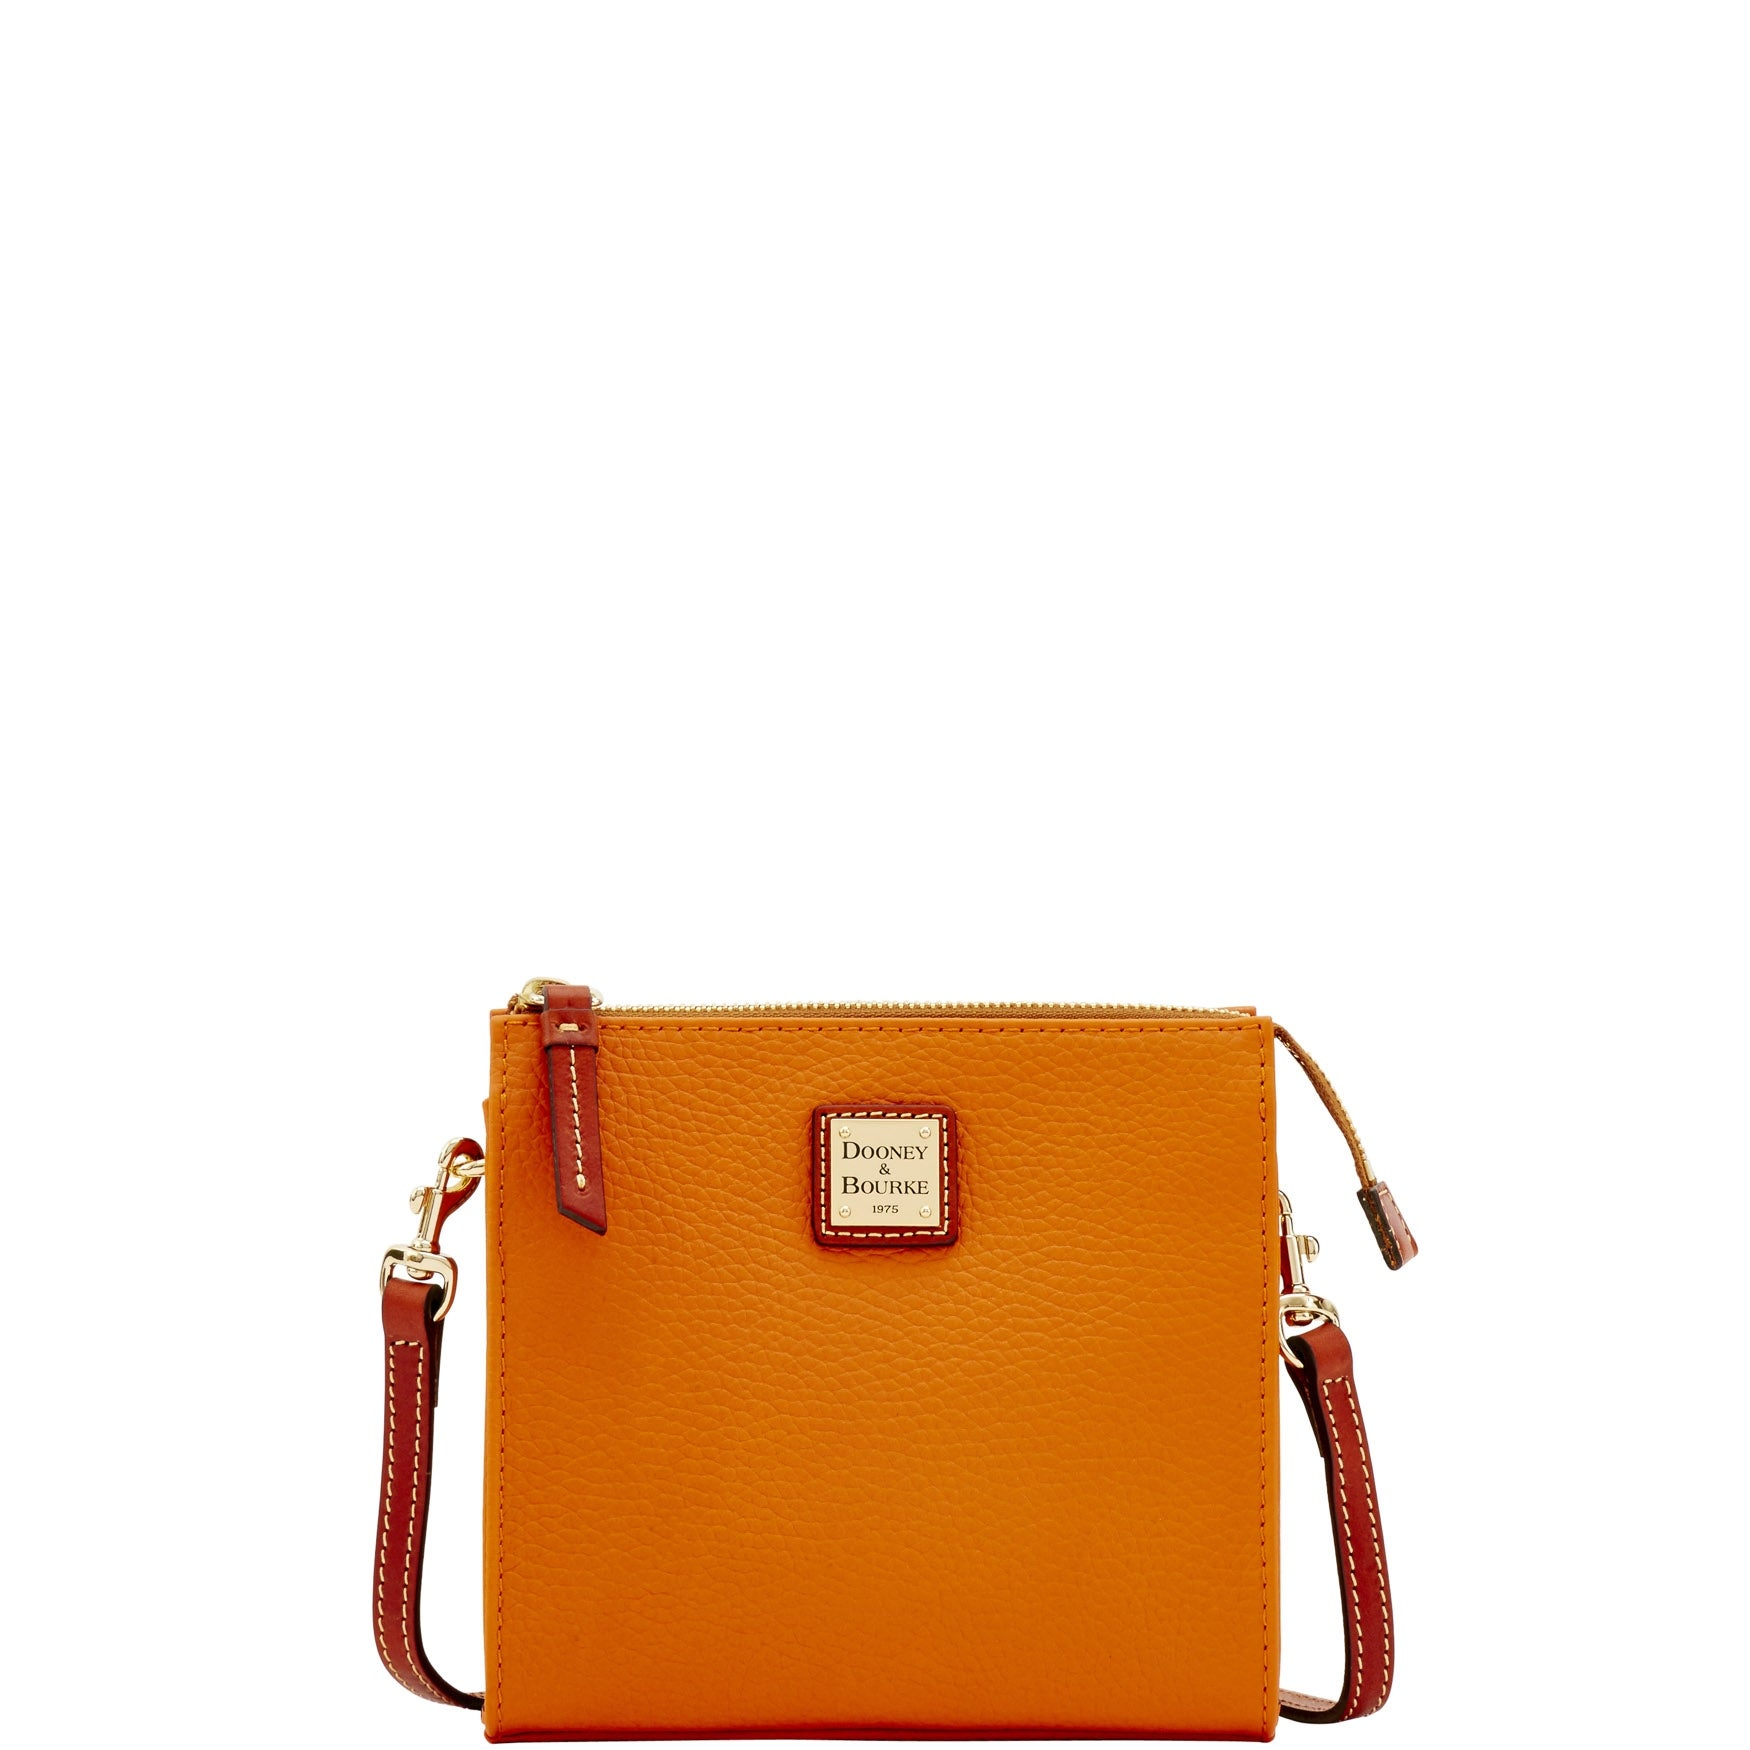 Dooney Bourke Pebble Grain North South Janine Crossbody Shoulder Bag Introduced By At 168 In Dec 2017 Free Shipping Today